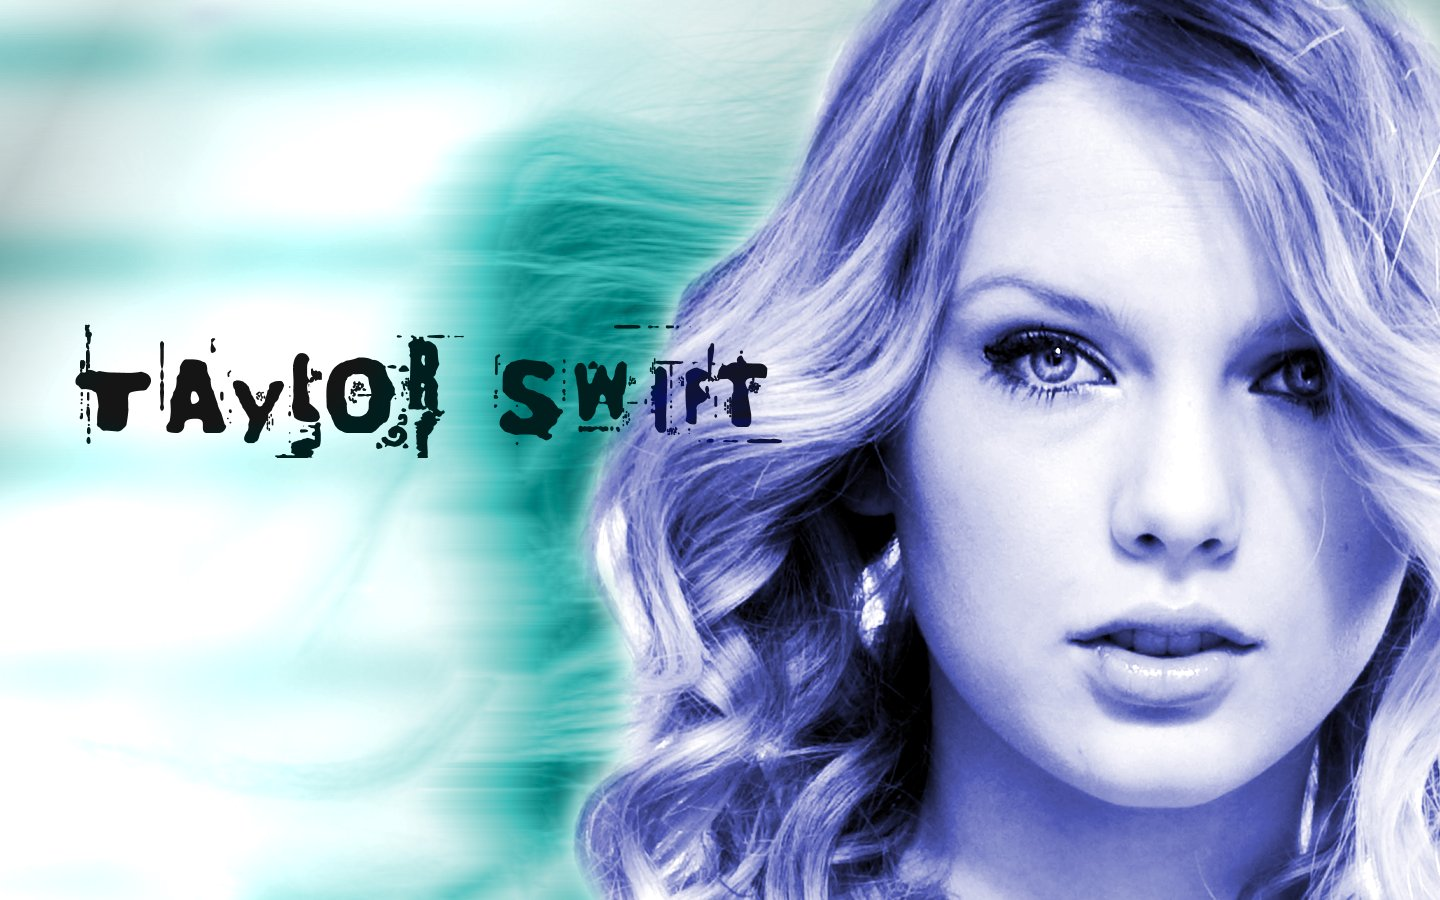 Taylor-Swift-Full-Wallpaper-HD